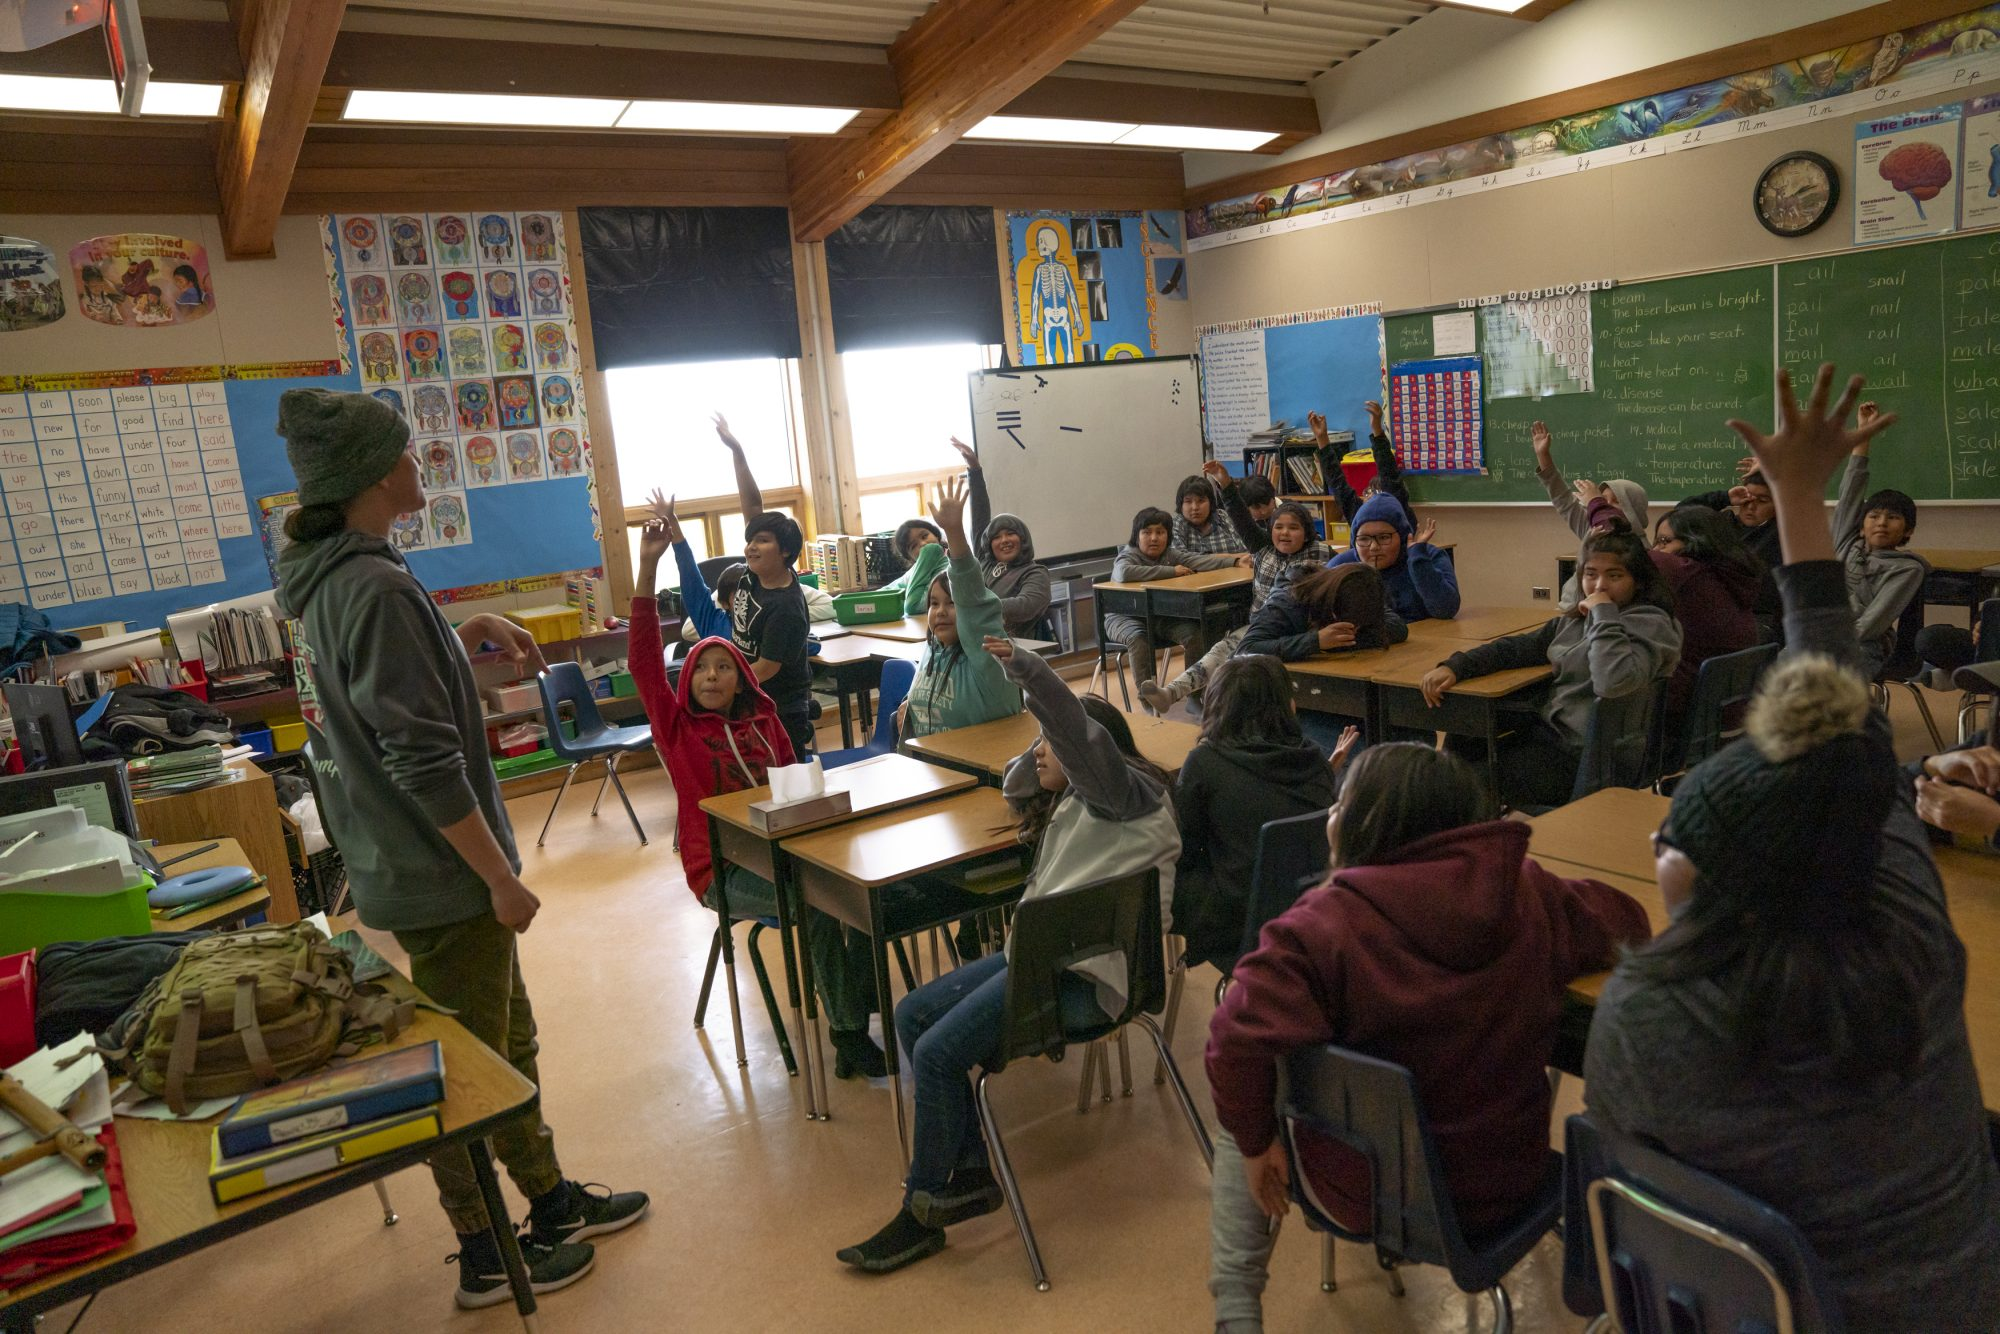 Mary Spencer speaks to a classroom of students in norther Ontario